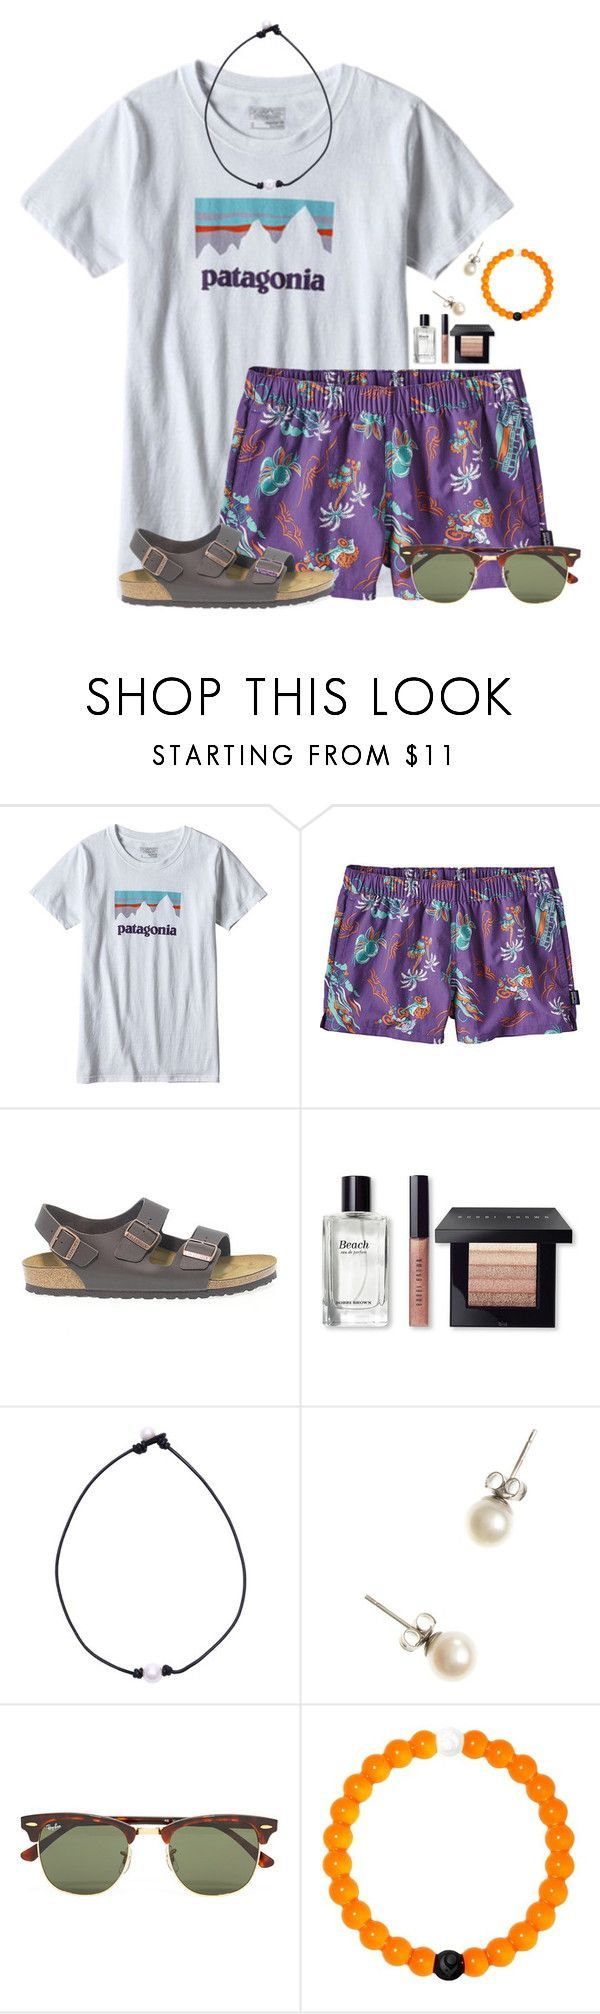 """""""I want some more Patagonia gear:)"""" by flroasburn on Polyvore featuring Patagonia, Birkenstock, Bobbi Brown Cosmetics, J.Crew, Ray-Ban and Lokai"""